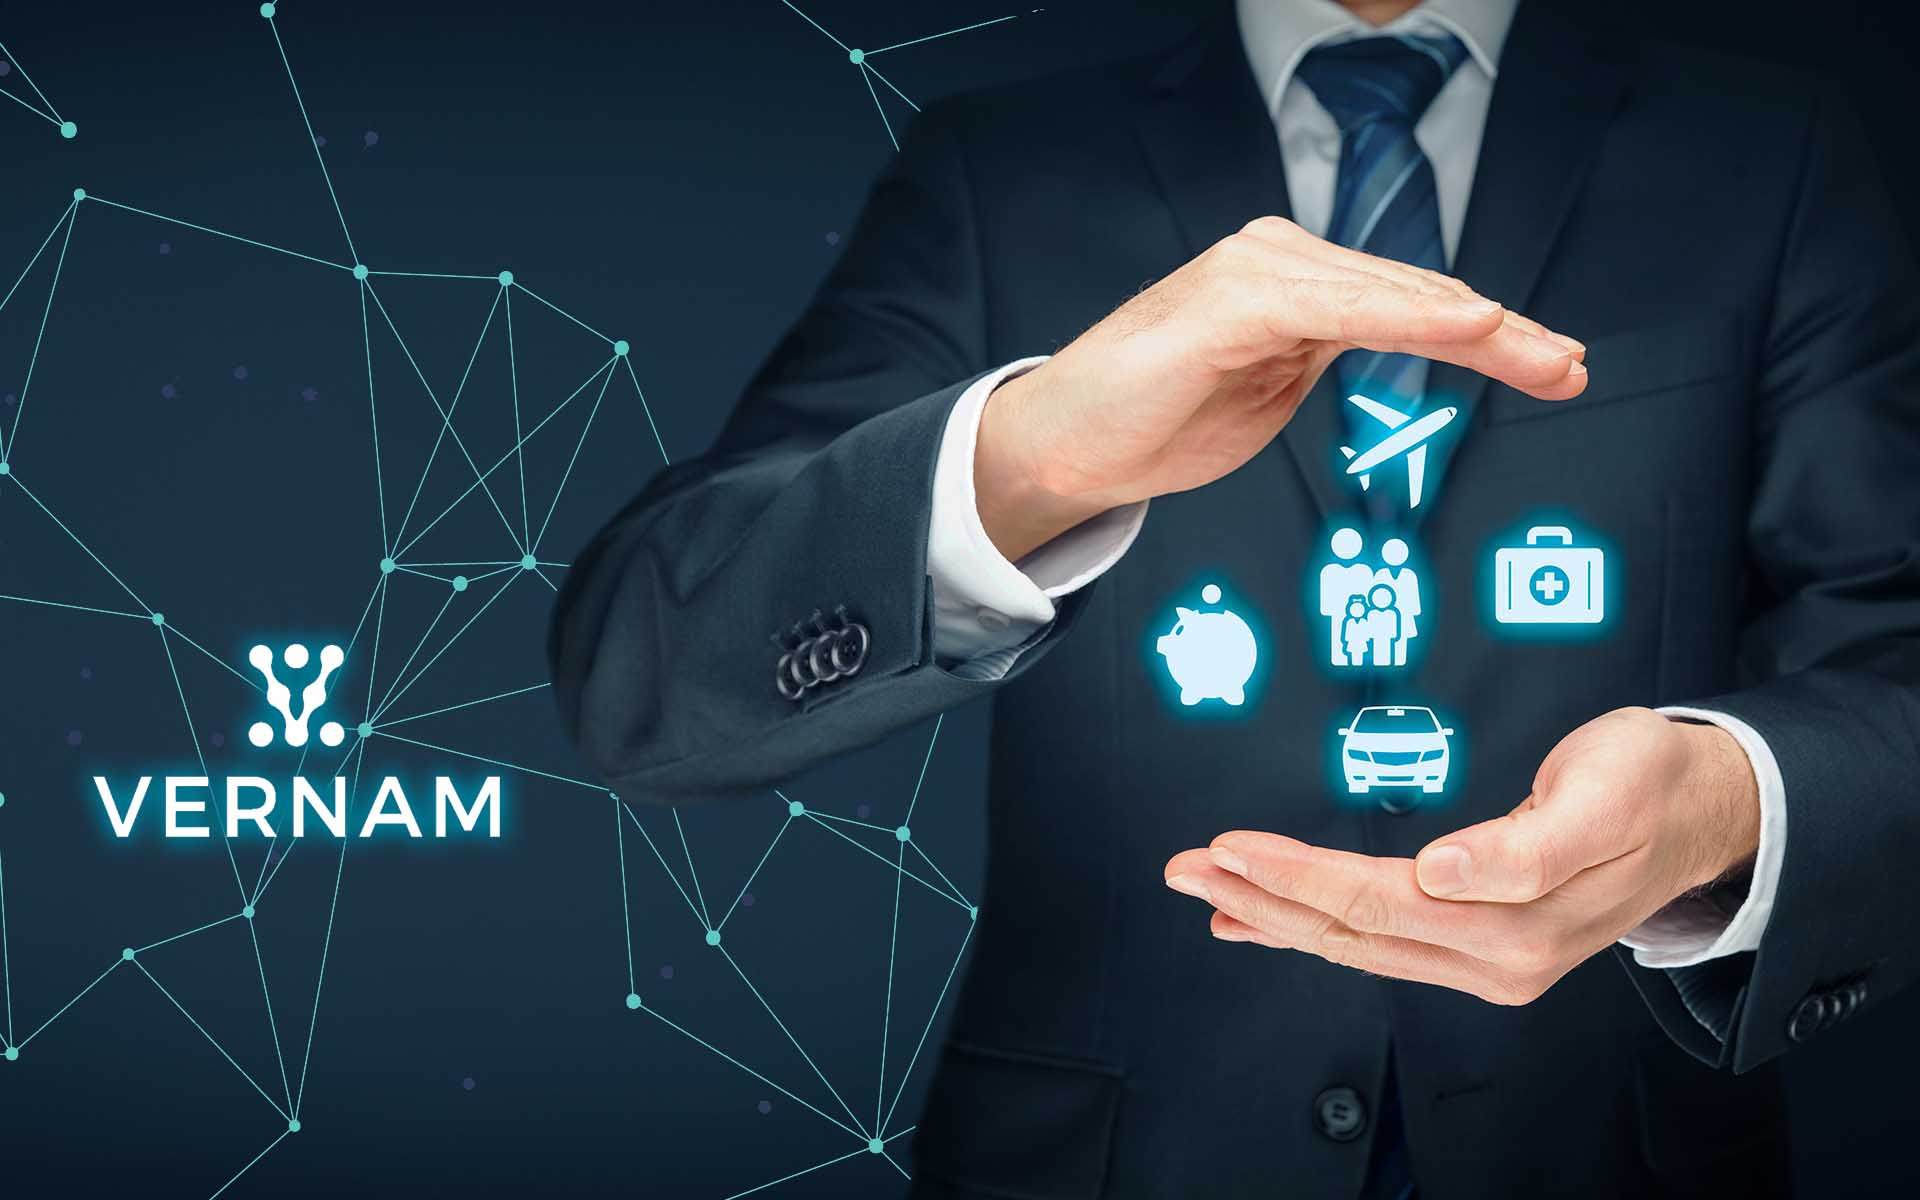 Everything You Need to Know About Vernam, A Game Changing Blockchain-Based Insurance Product